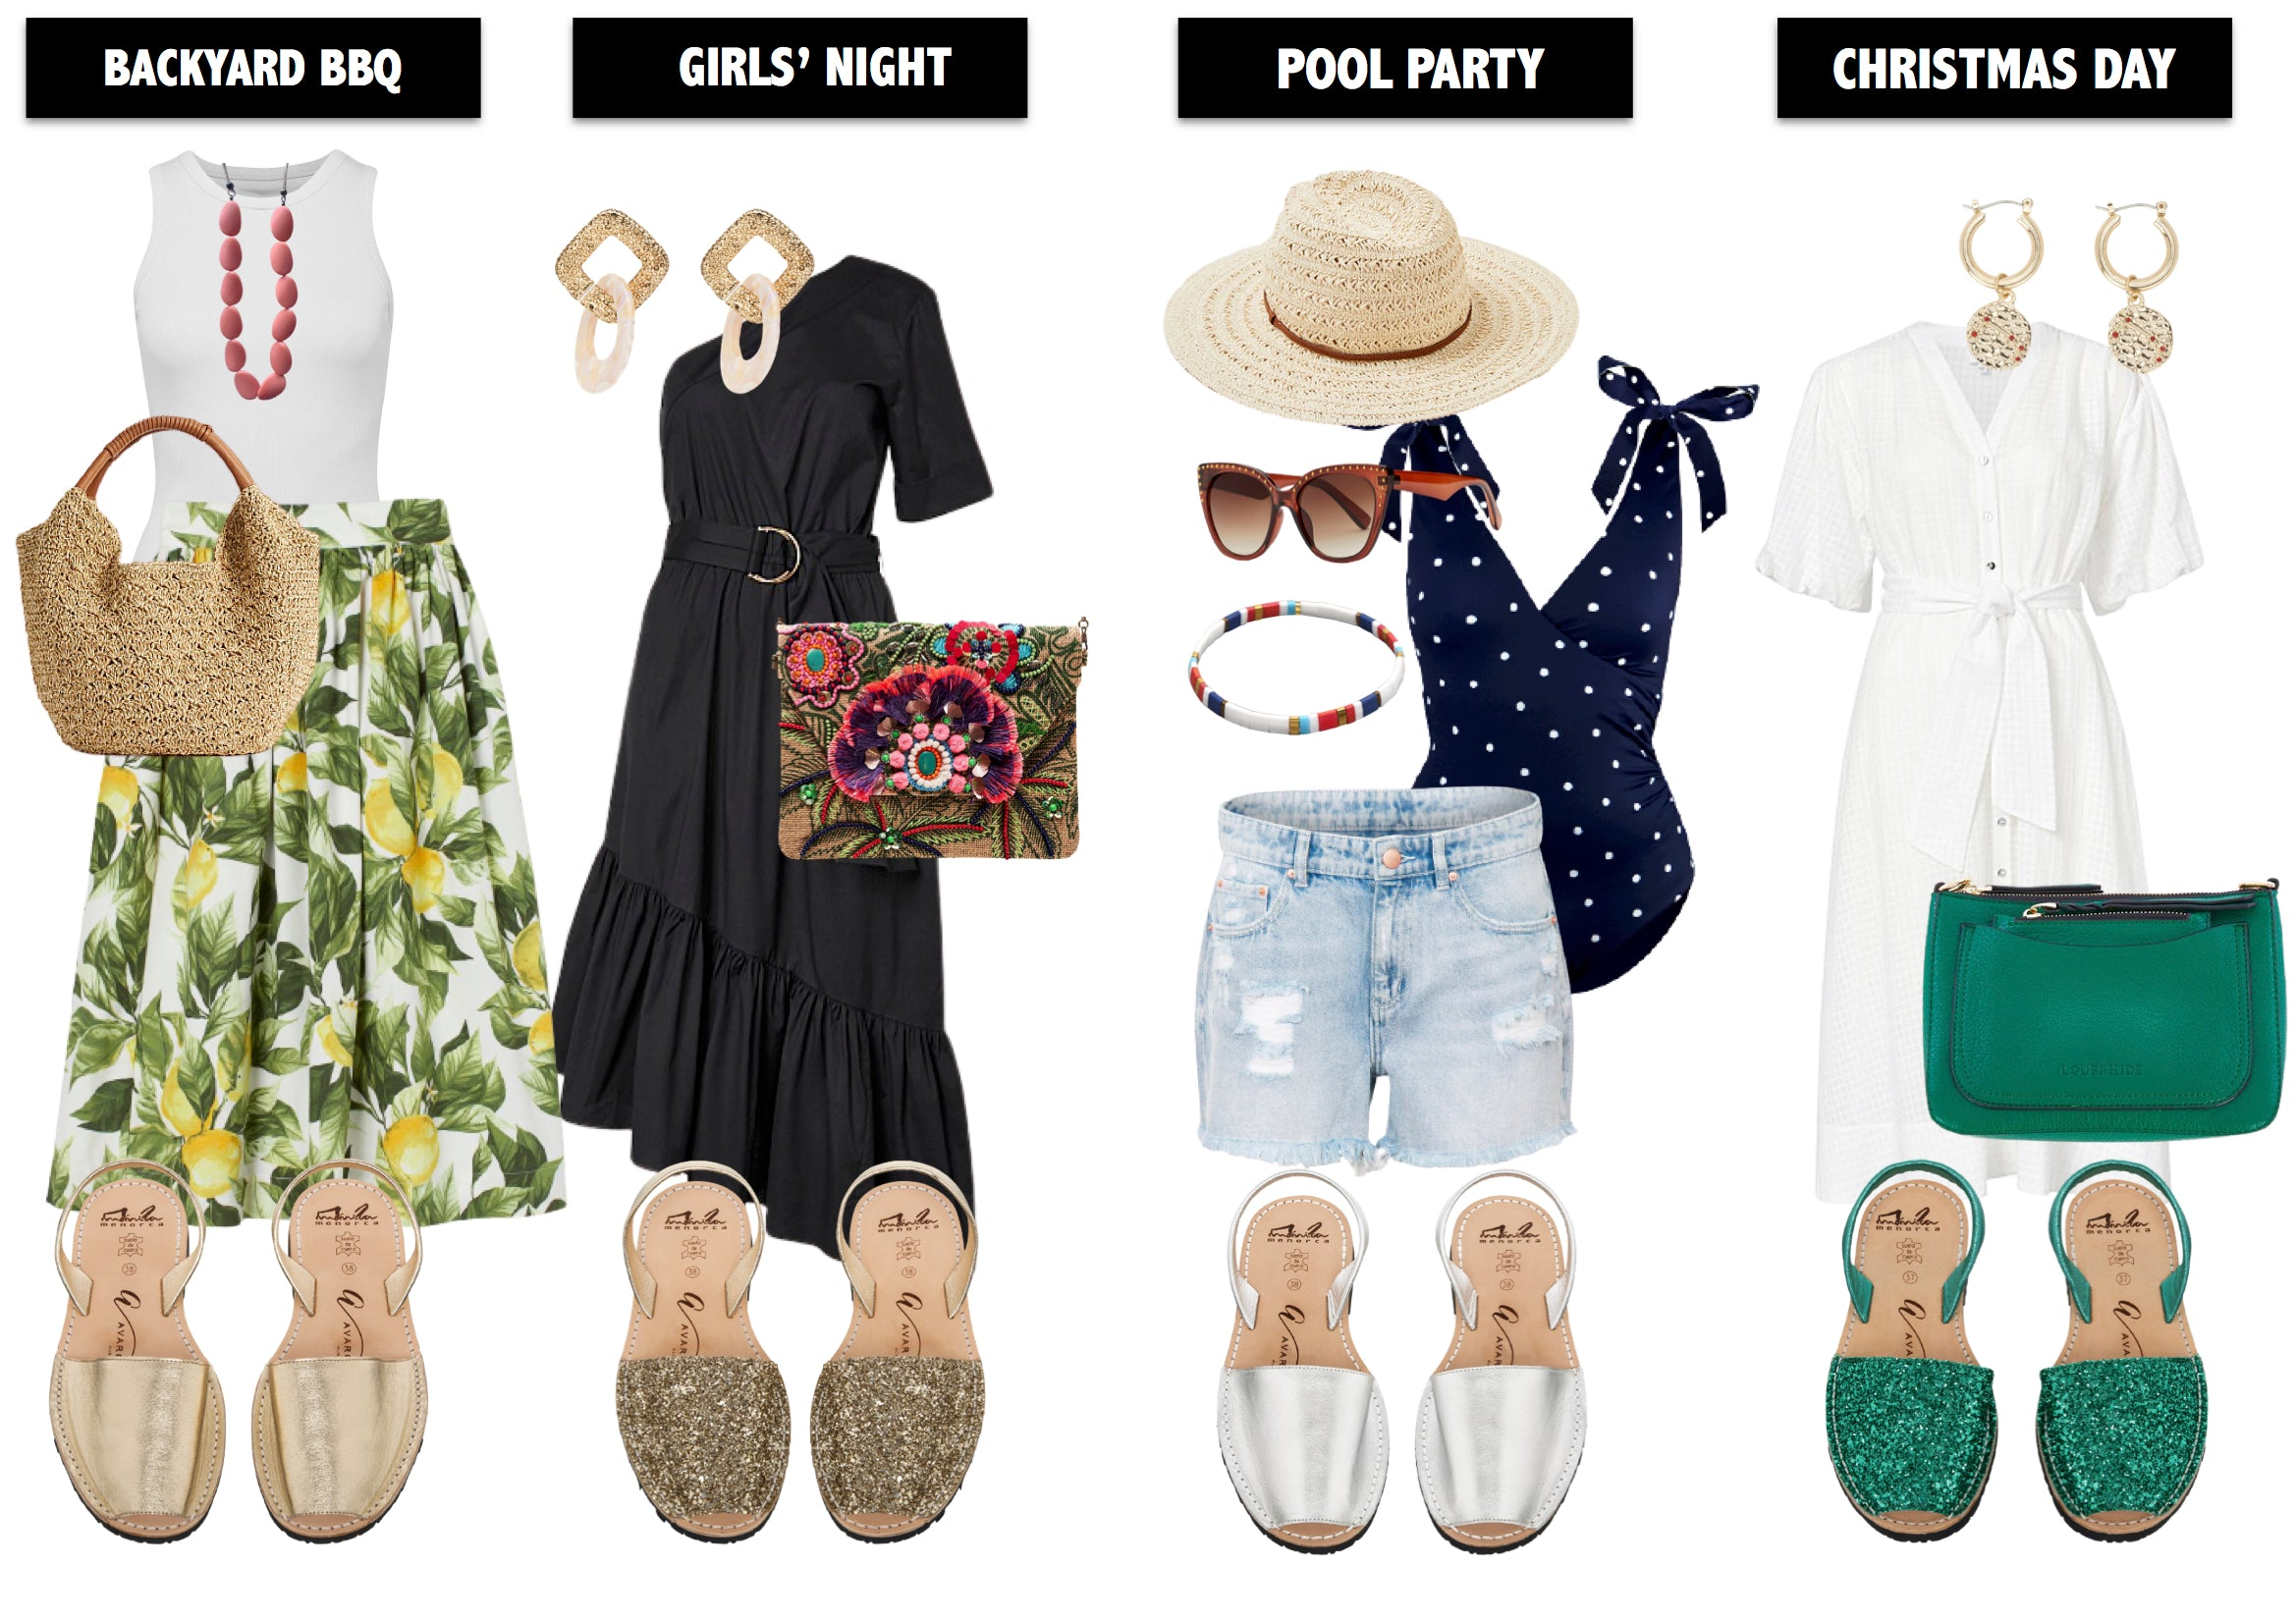 Four outfits perfect for summer parties